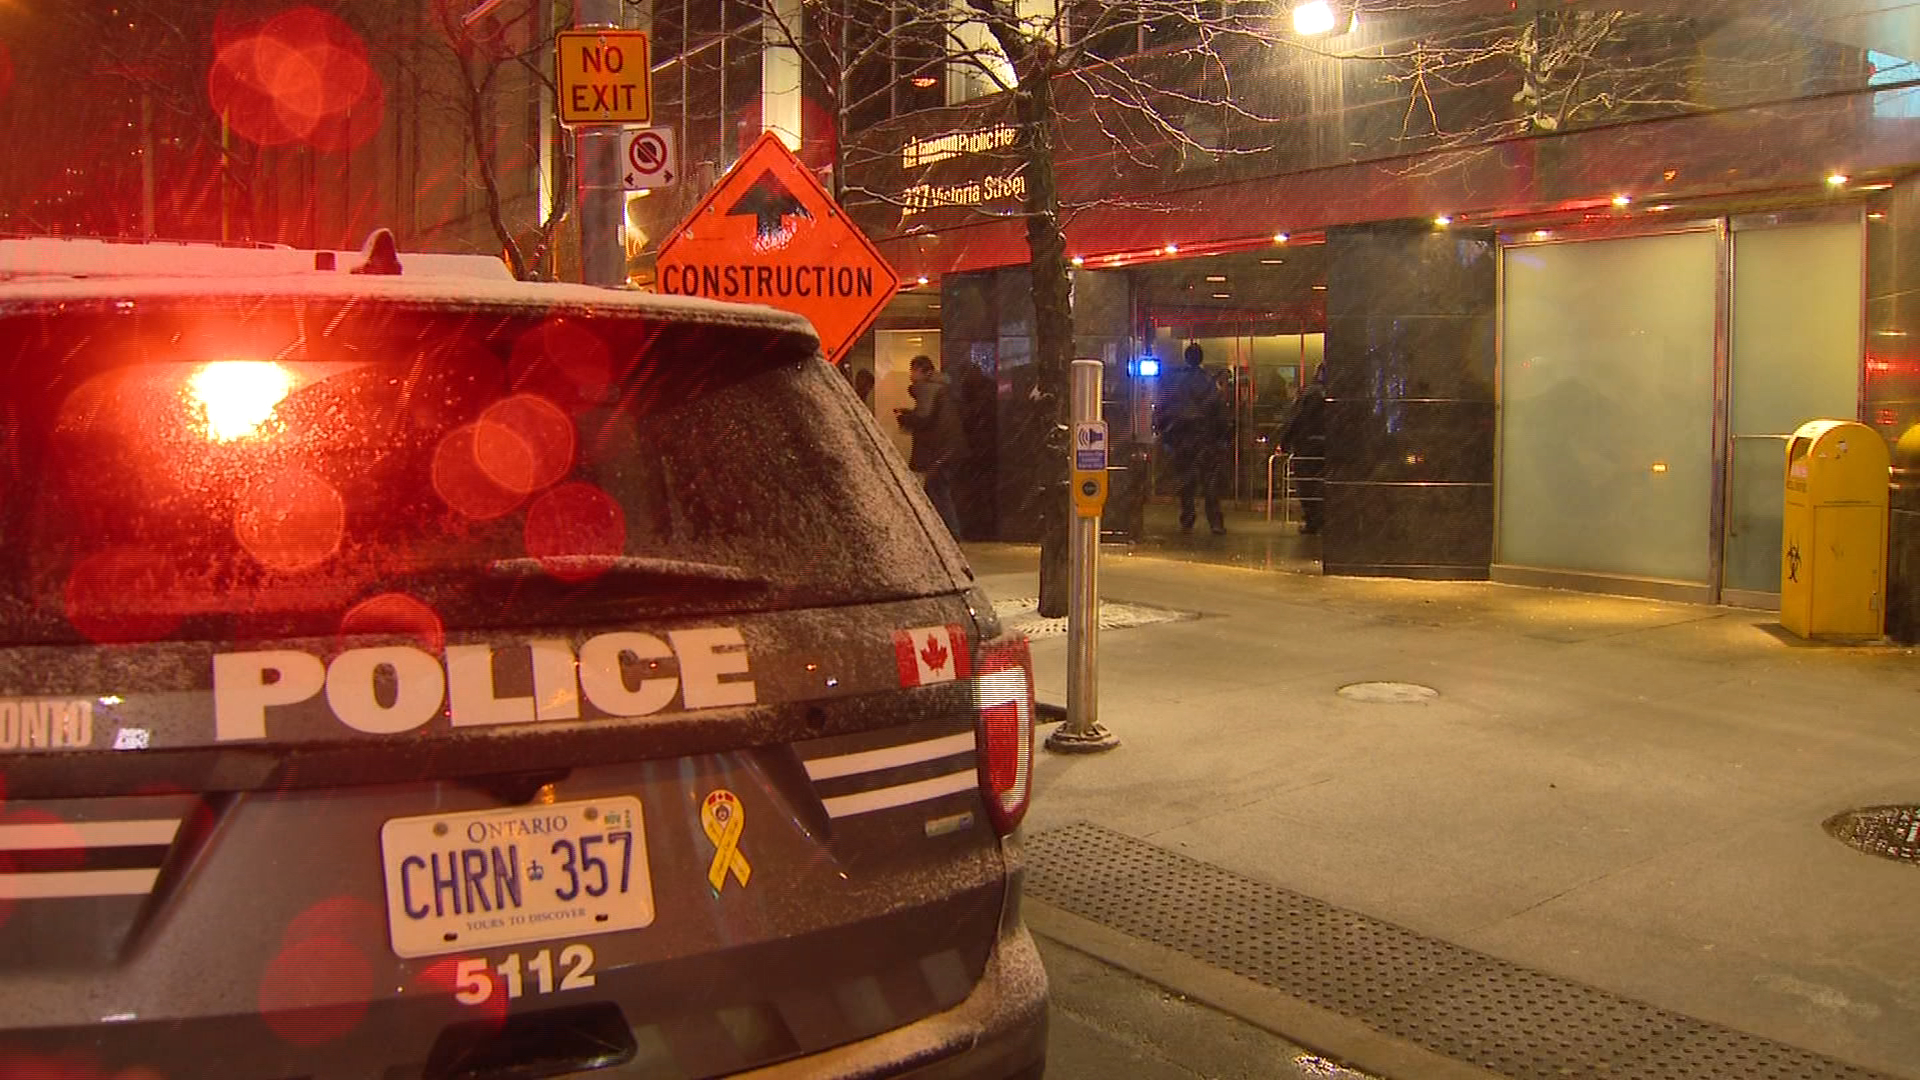 Over a dozen overdoses reported at supervised injection site The Works